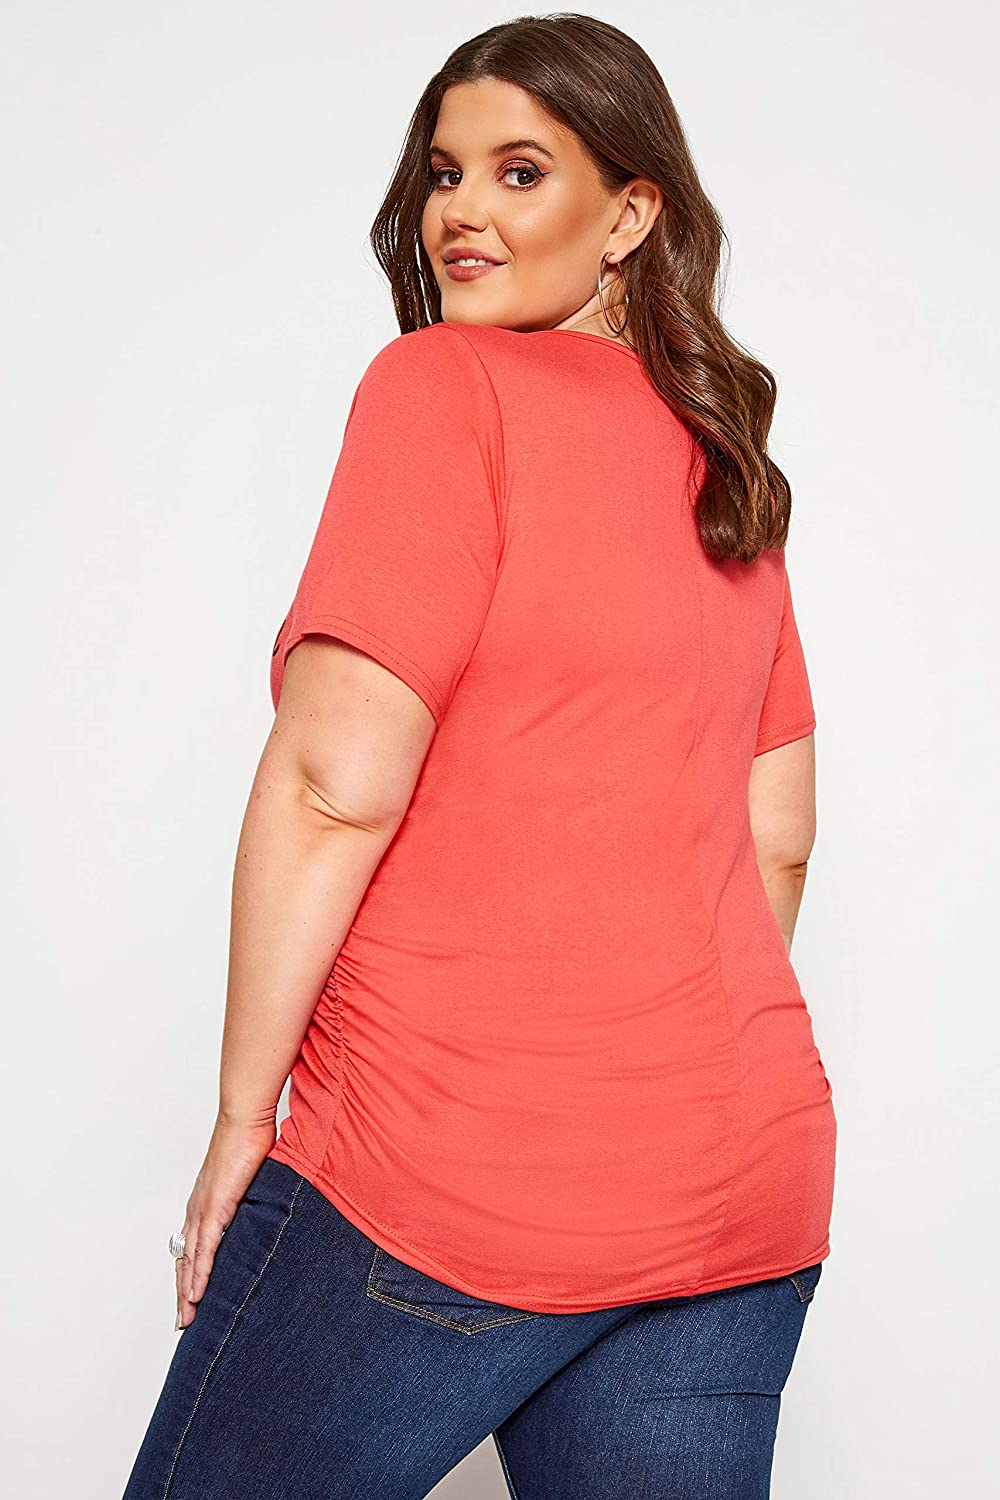 Yours Clothing Womens Plus Size Maternity Slogan T-Shirt